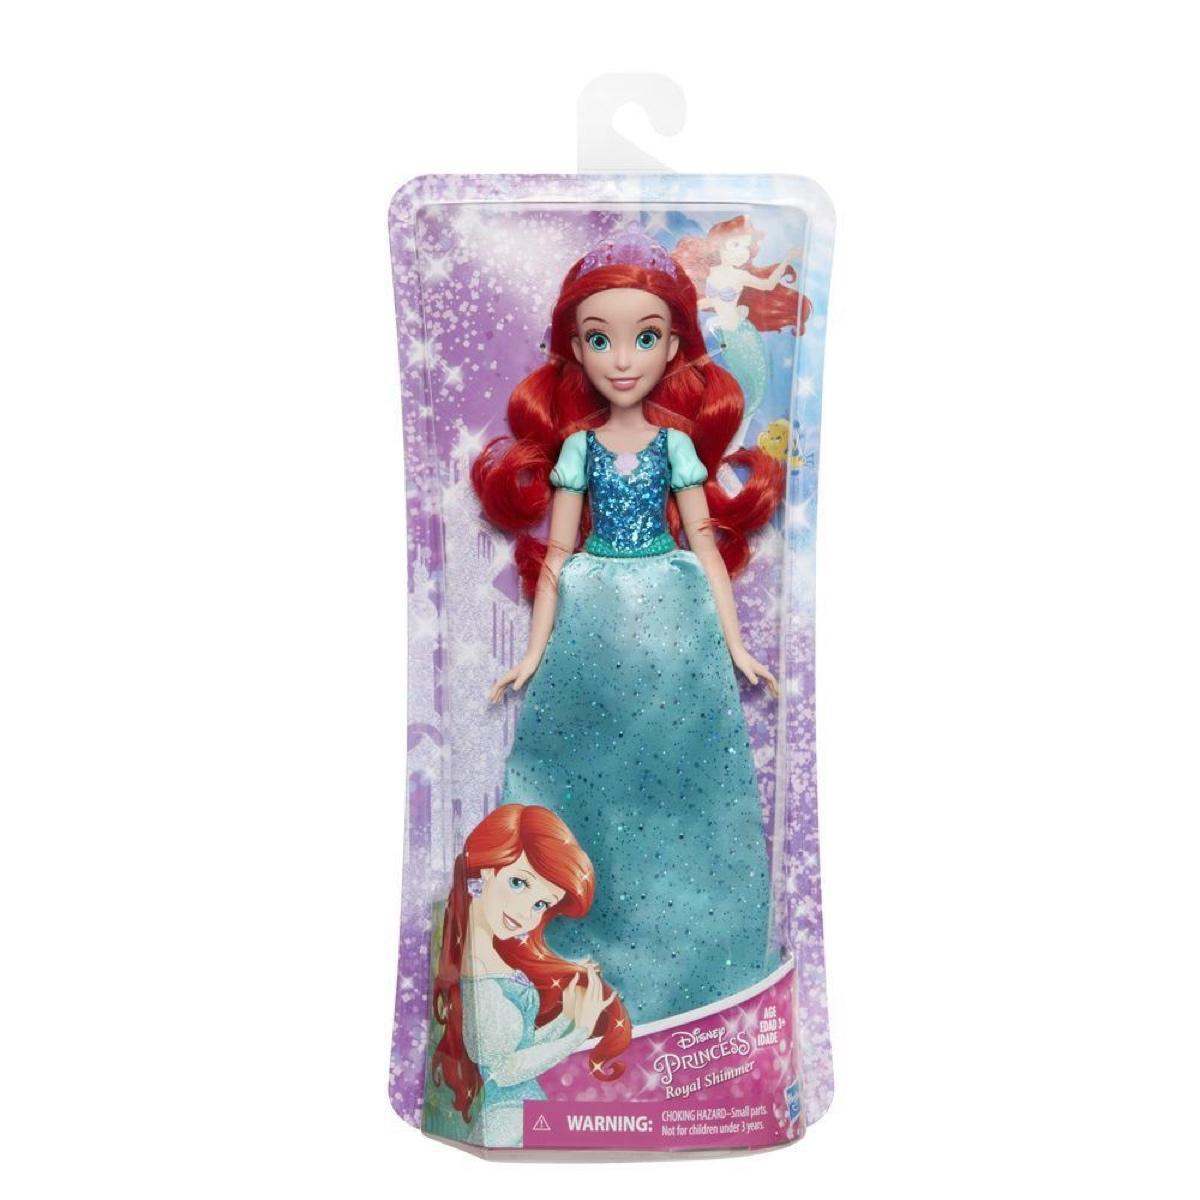 Princess Royal Shimmer Ariel Fashion Doll